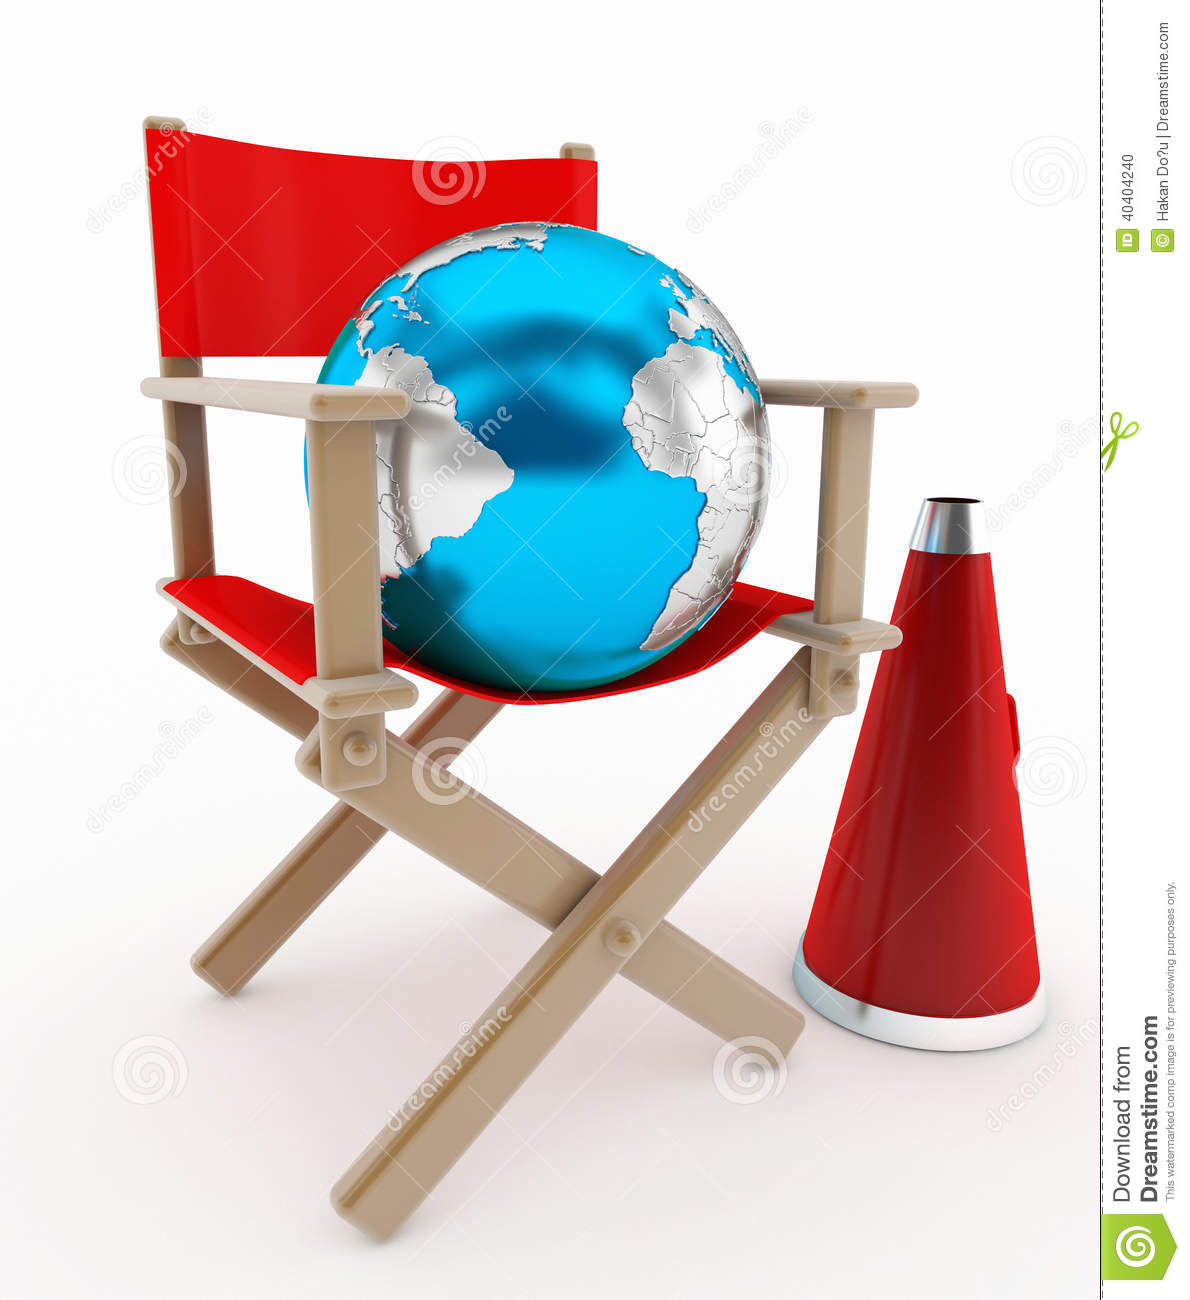 high quality directors chairs container store chair director and world concept stock photo image 40404240